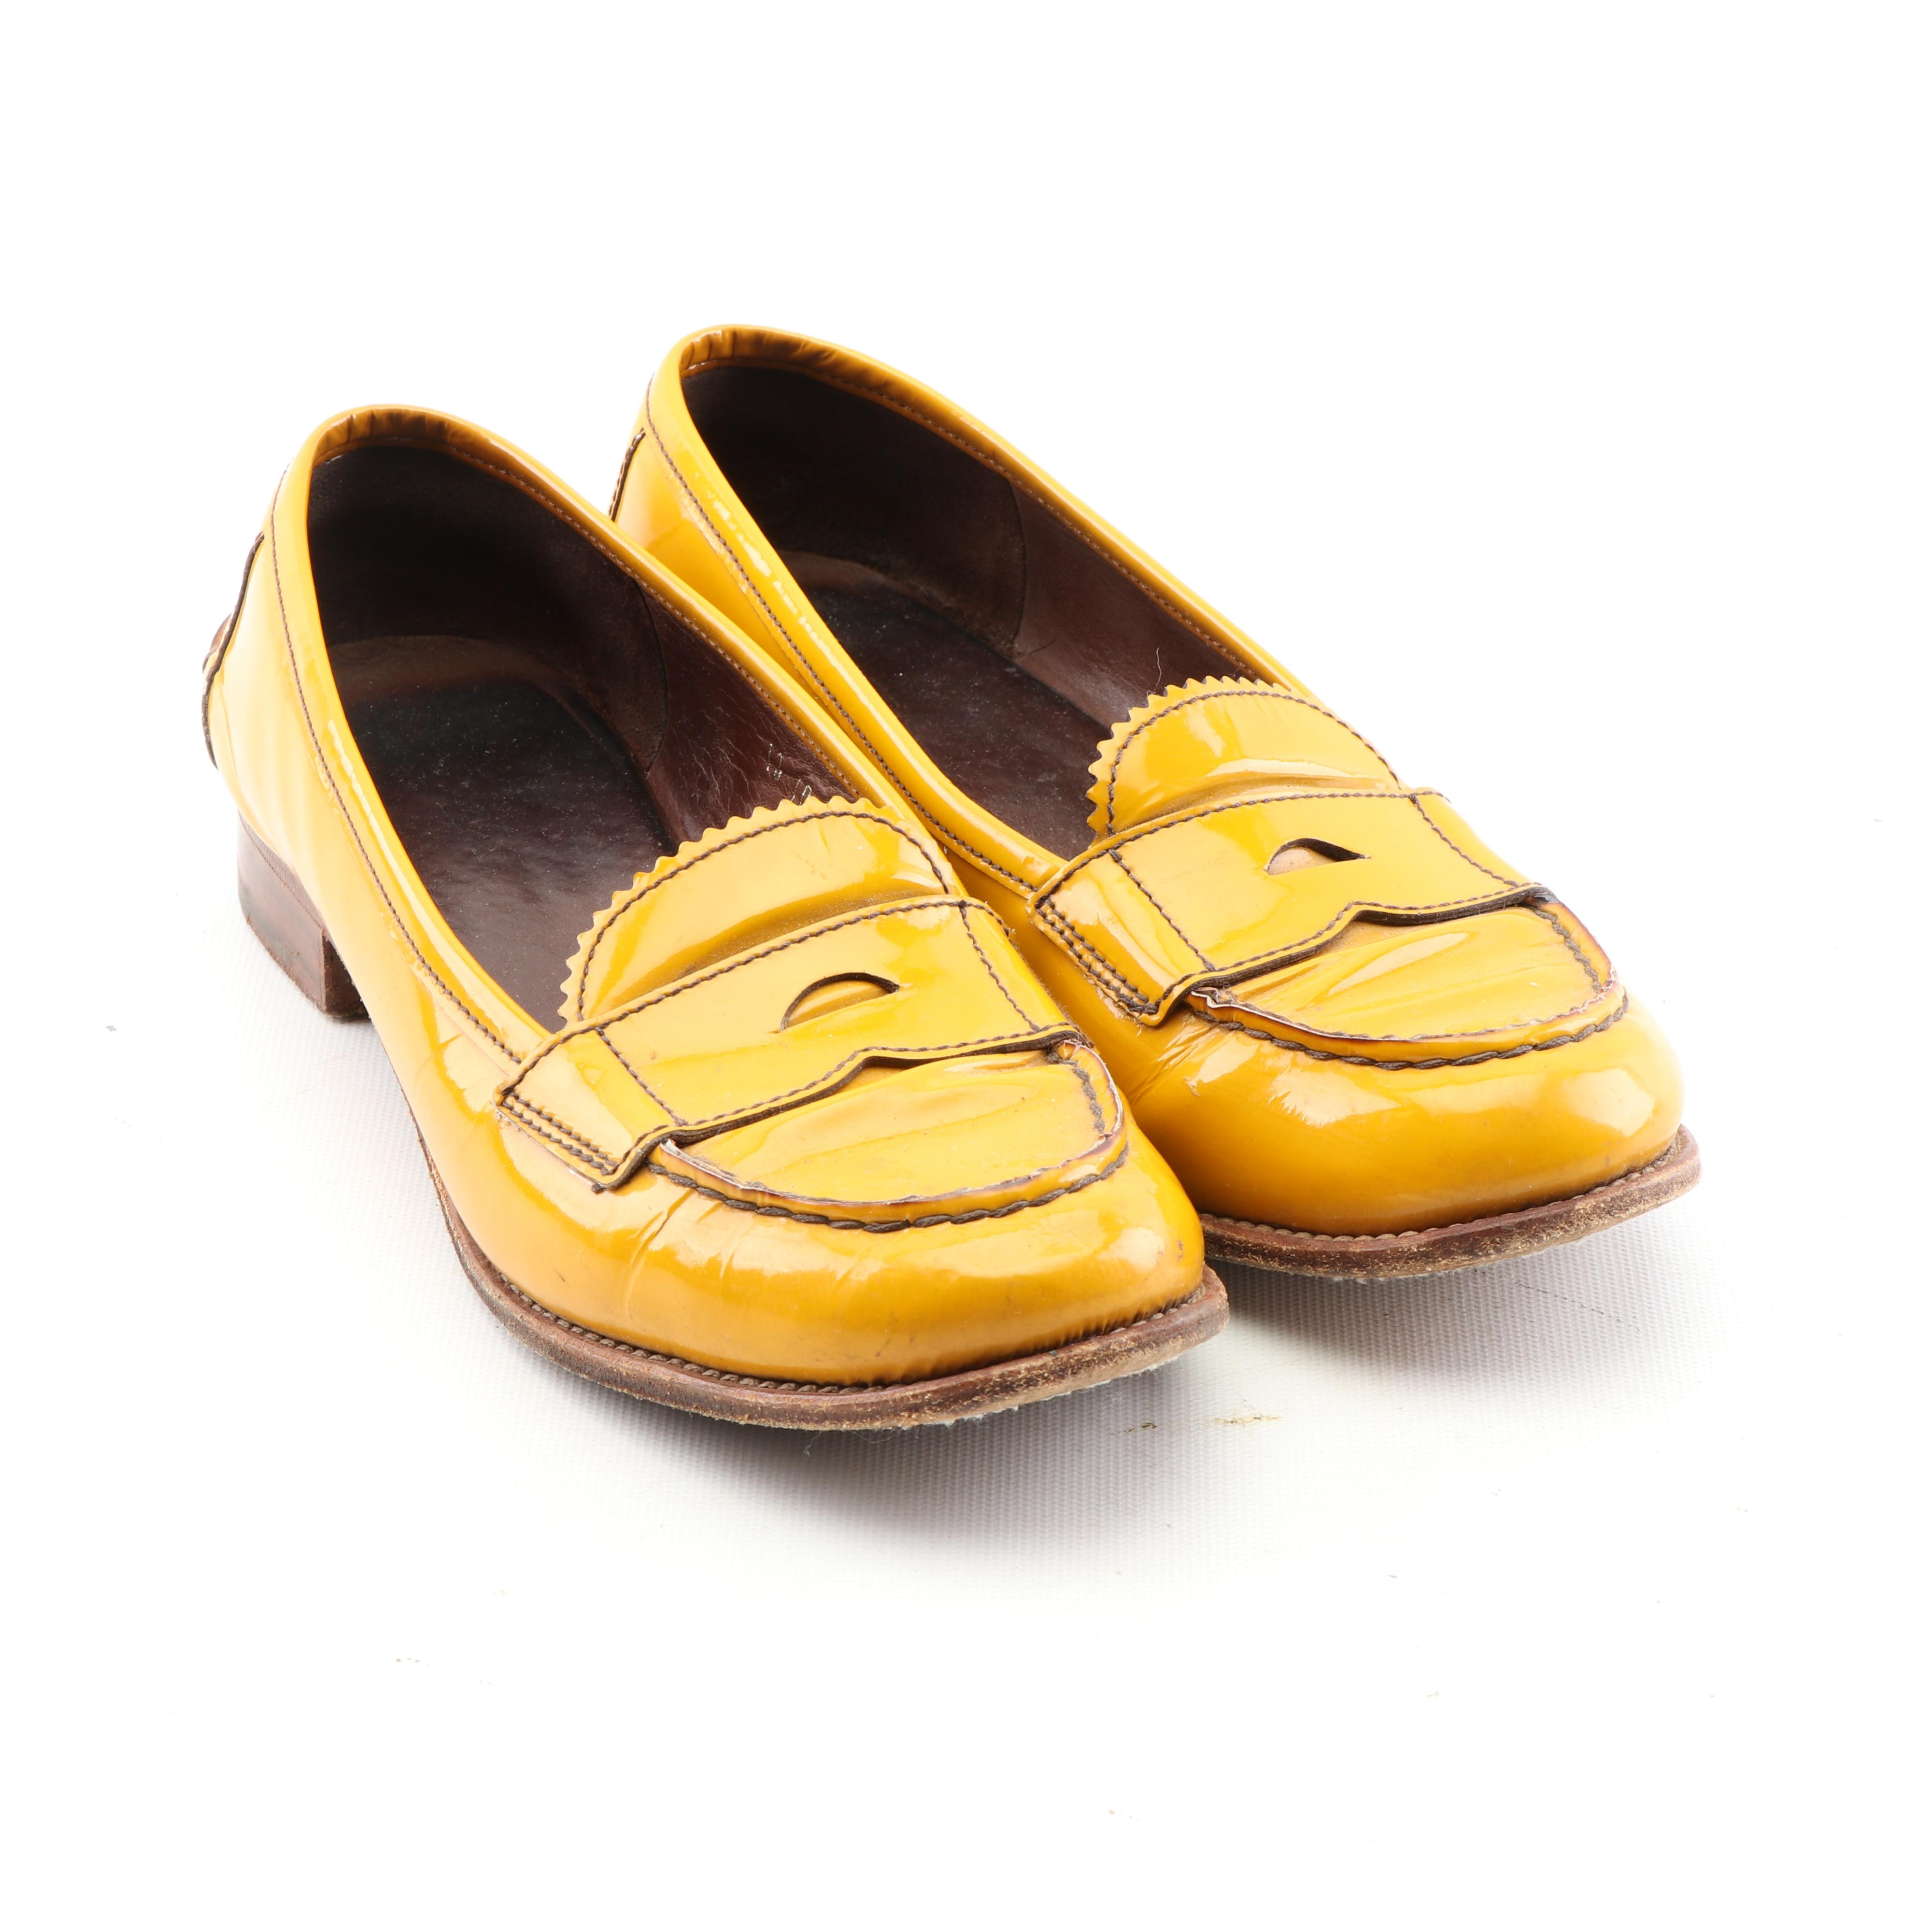 Women's Prada Mustard Yellow Patent Leather Loafers, Made in Italy